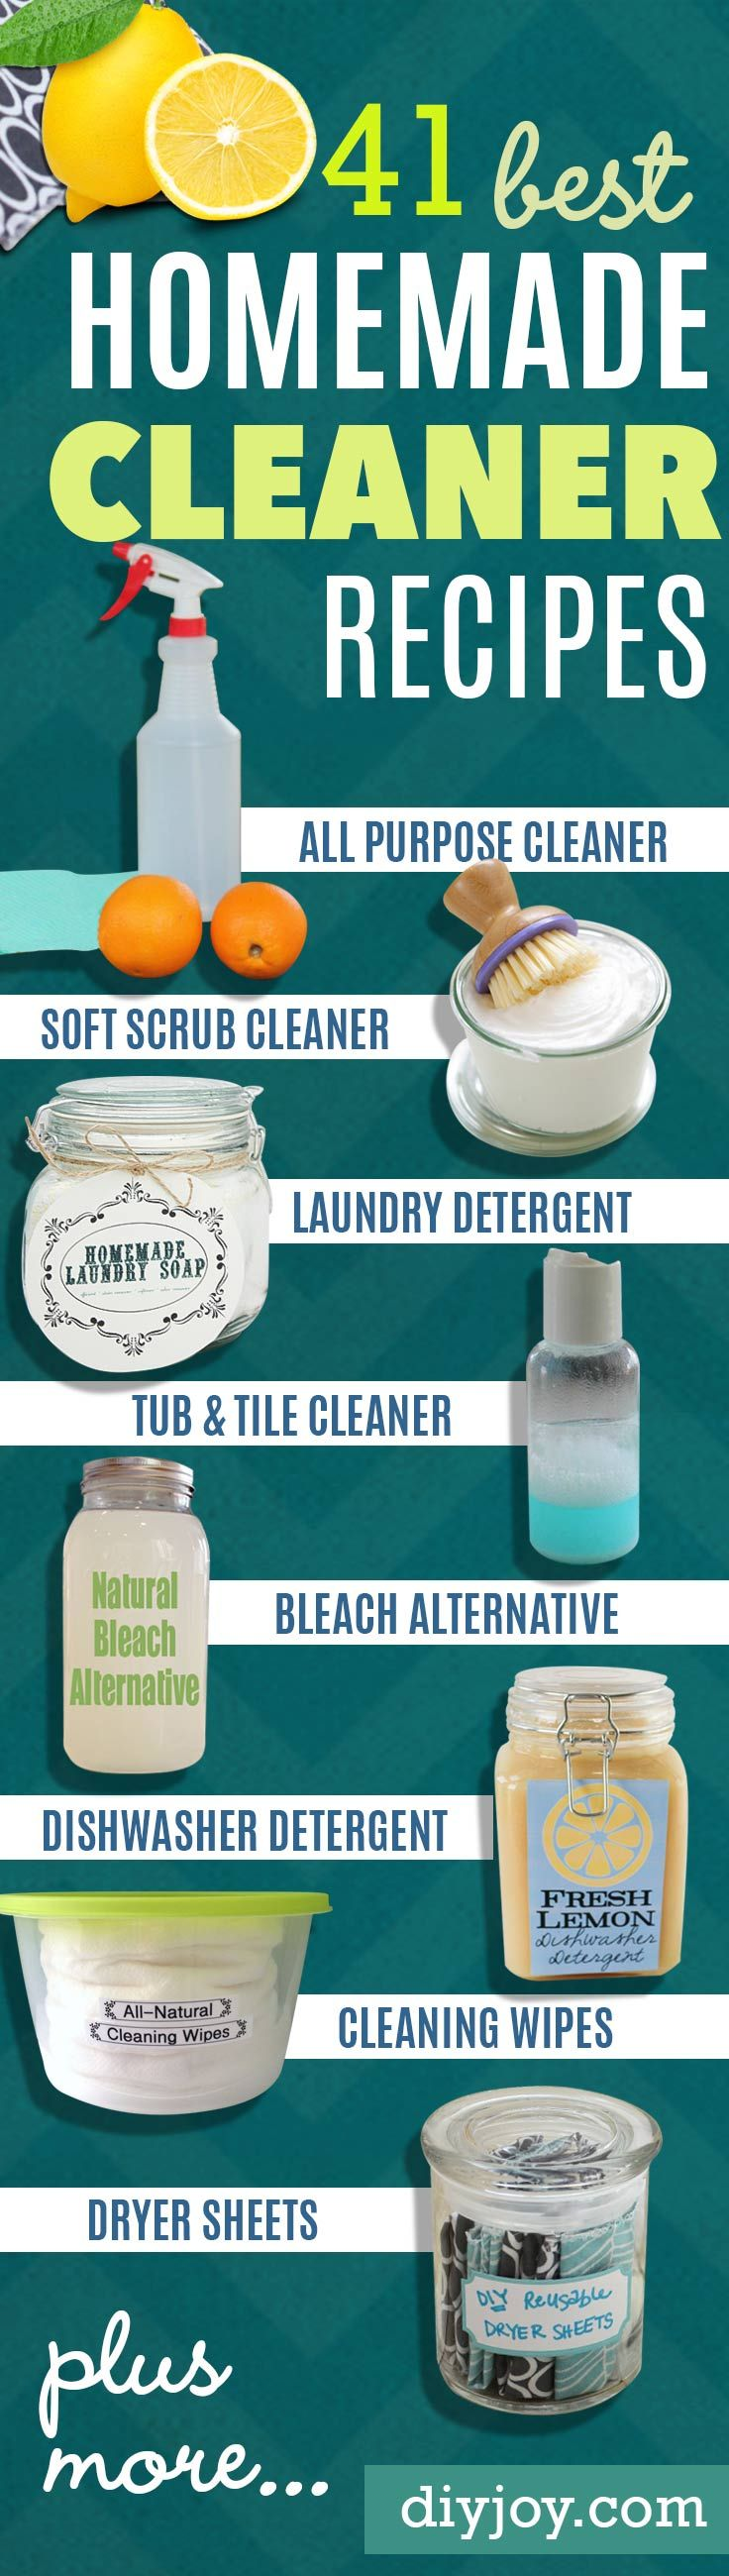 Best Natural Homemade DIY Cleaners and Recipes - All Purposed Home Care and Cleaning with Vinegar, Essential Oils and Other Natural Ingredients For Cleaning Bathroom, Kitchen, Floors, Laundry, Furniture and More http://diyjoy.com/best-homemade-cleaners-recipes